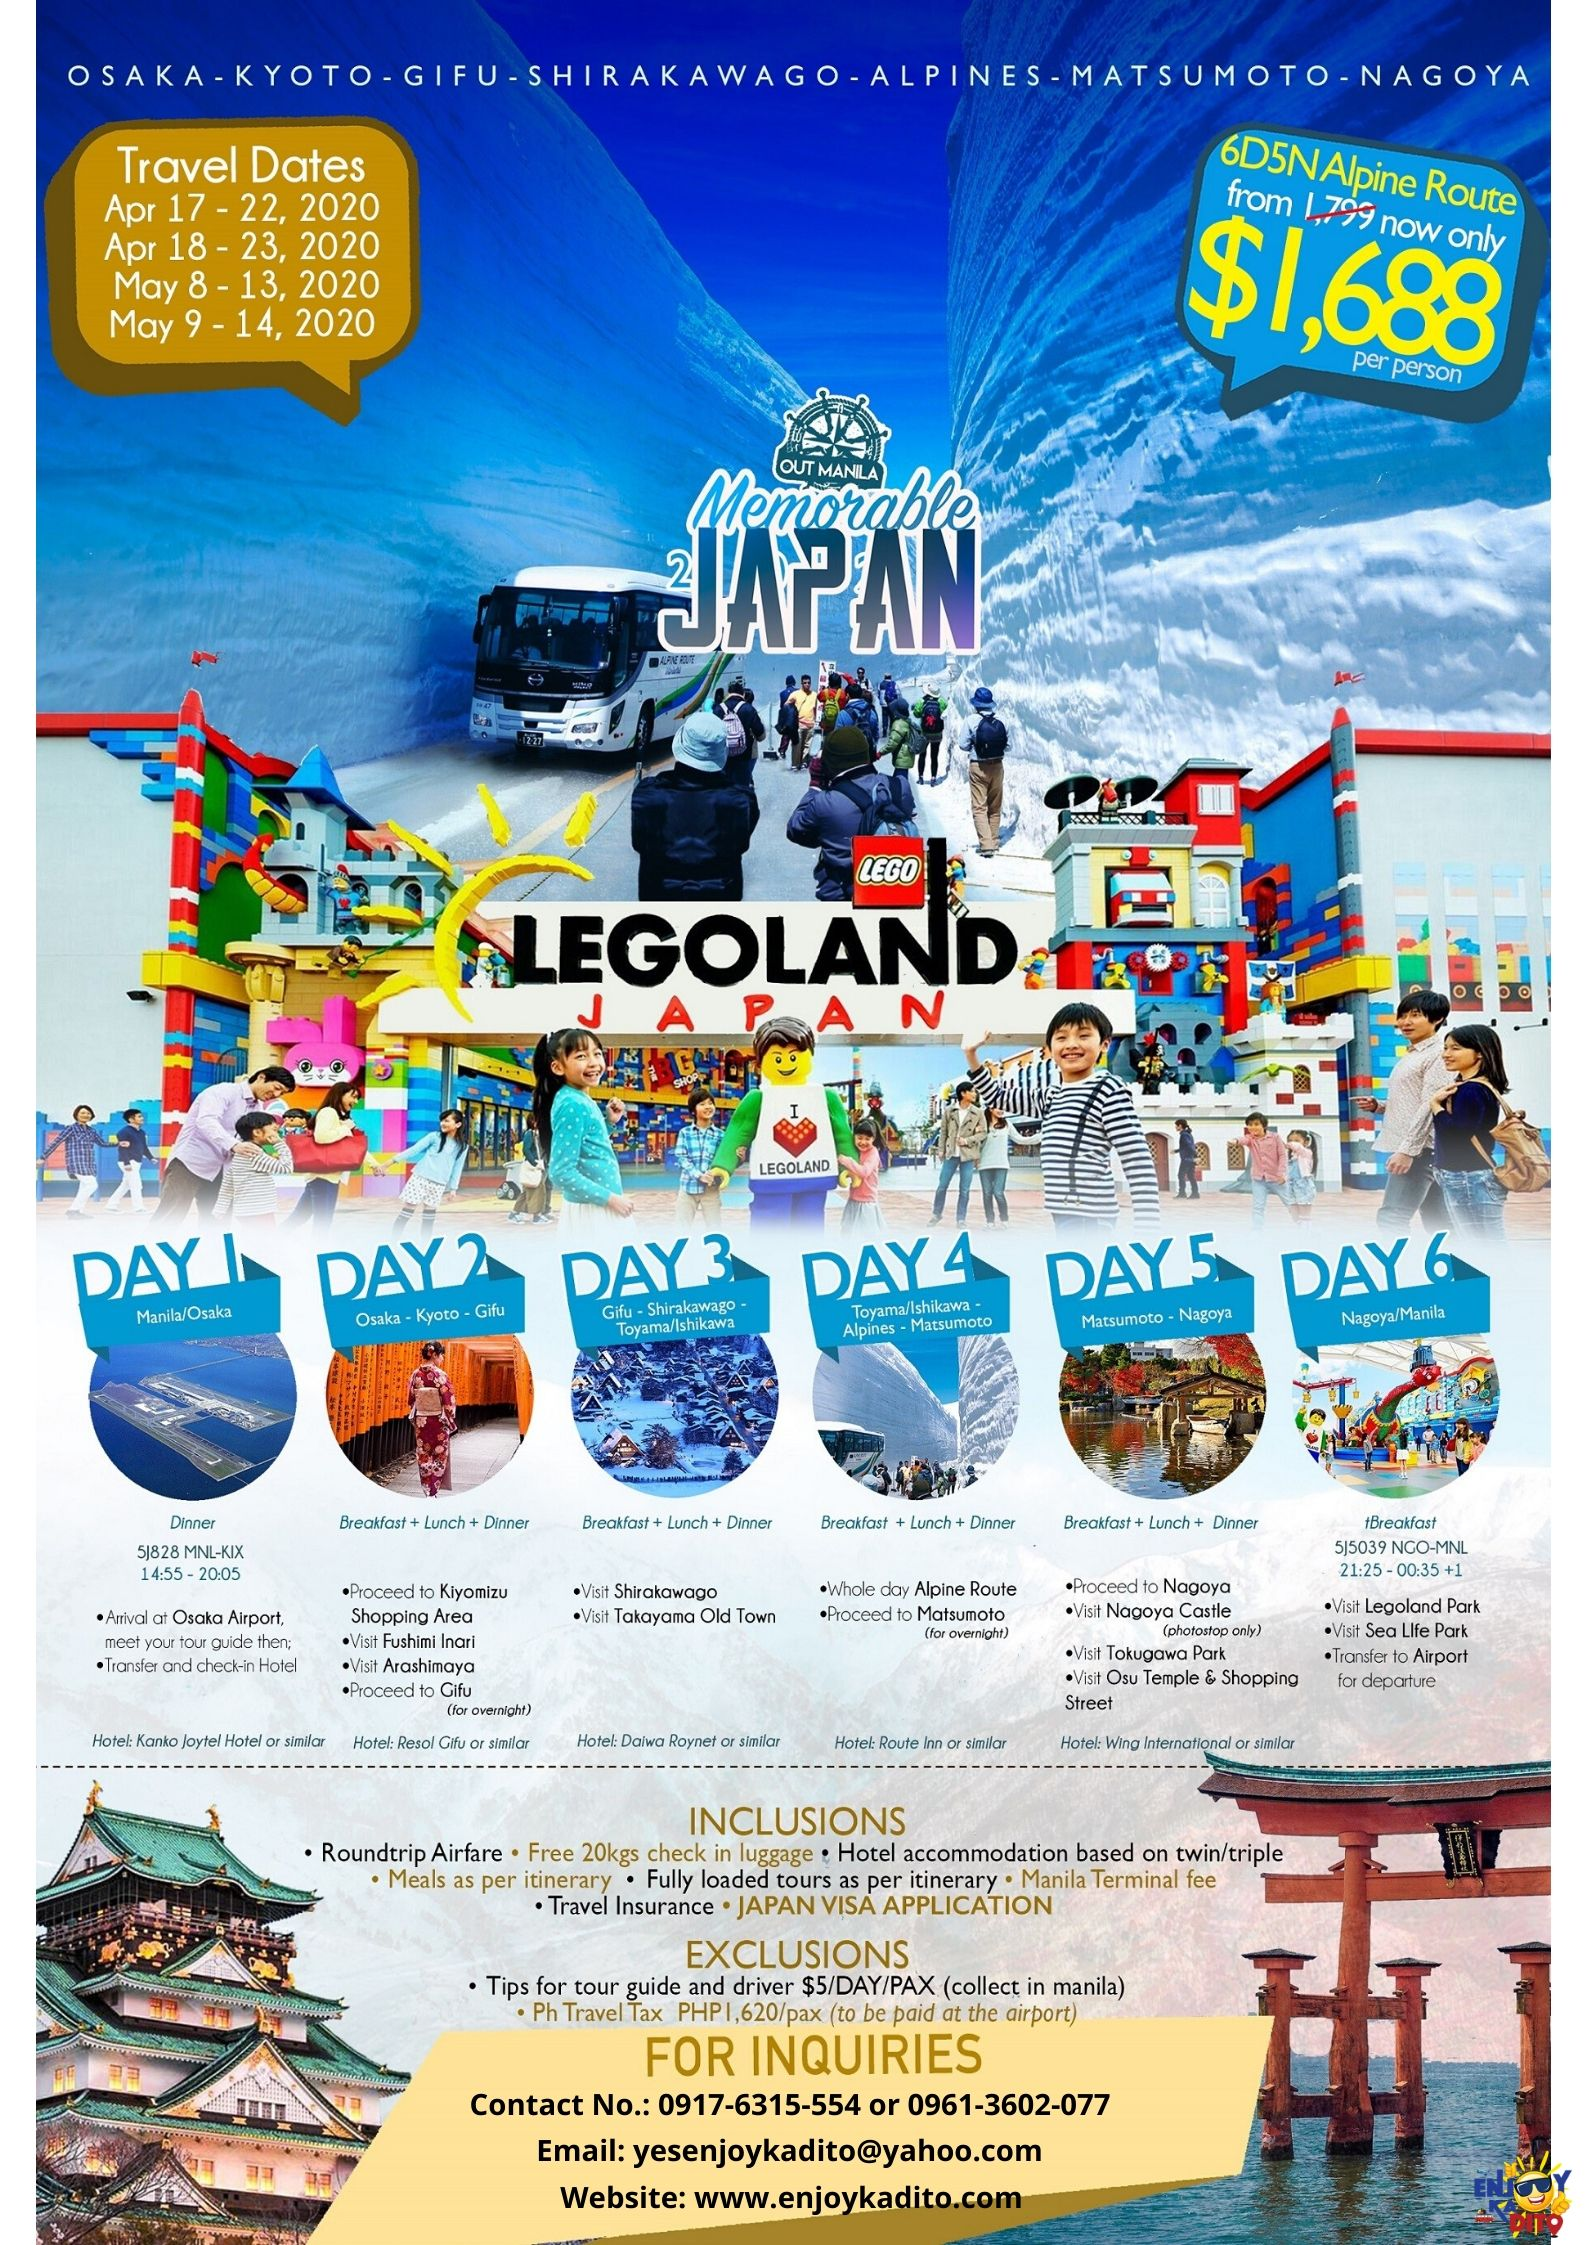 Japan Legoland by MCP Greenery Travel and Tours